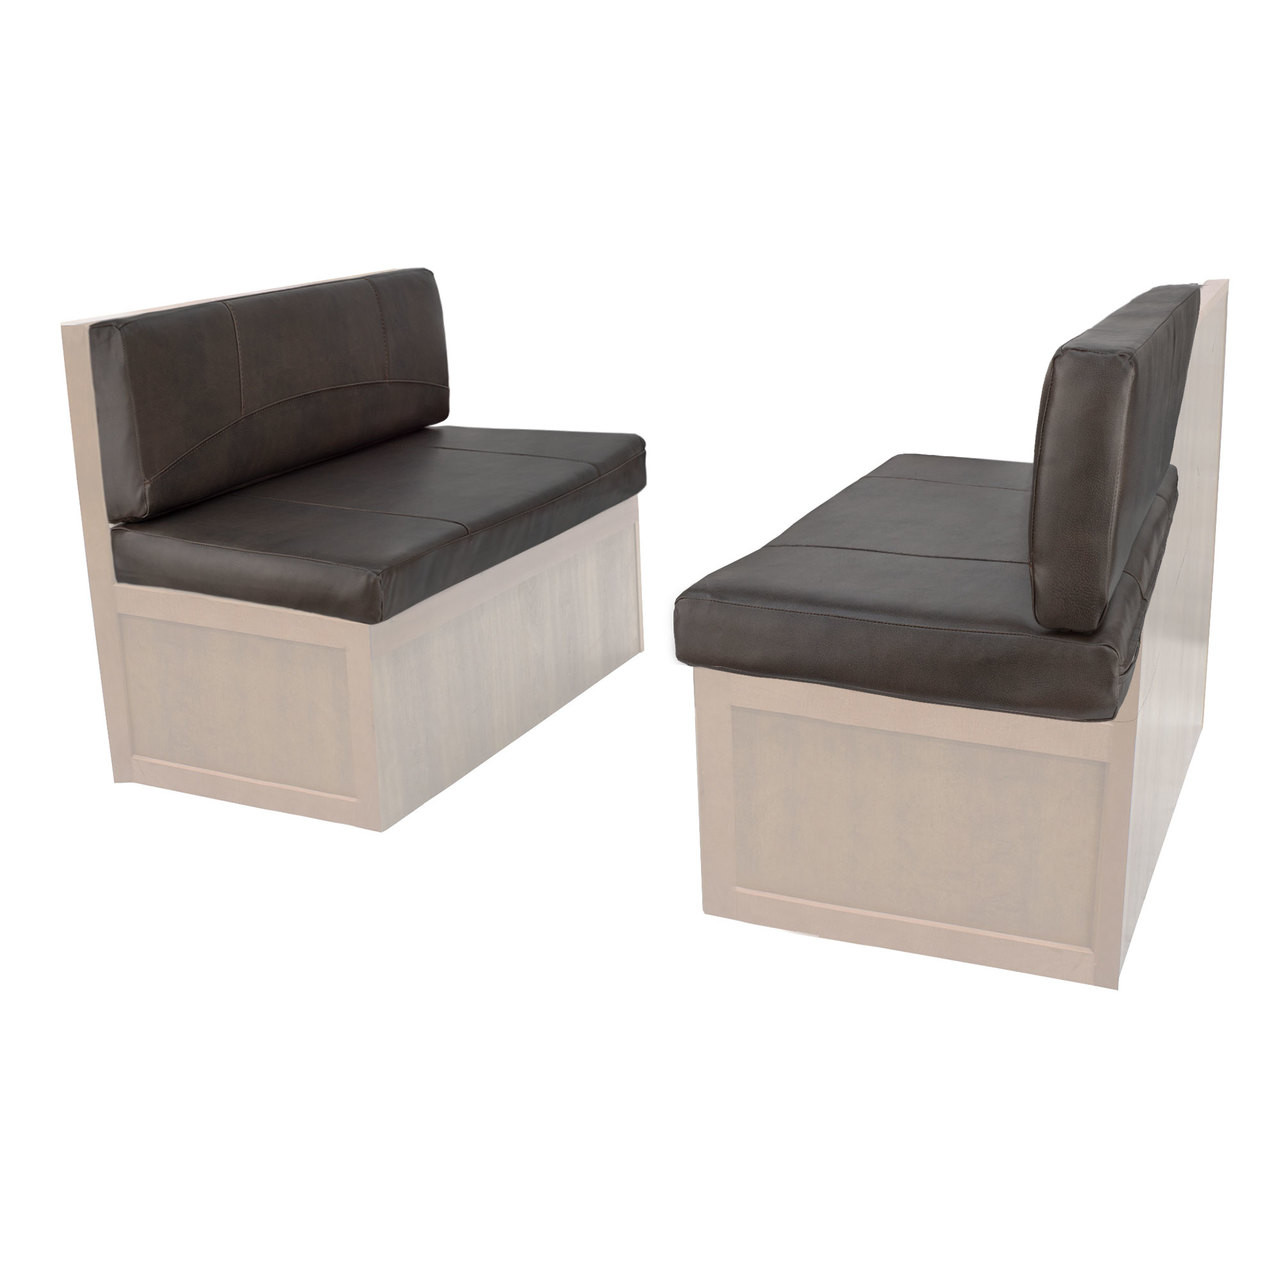 Charles style rv dinette cushions 38 to 44 with suprima leather and memory foam